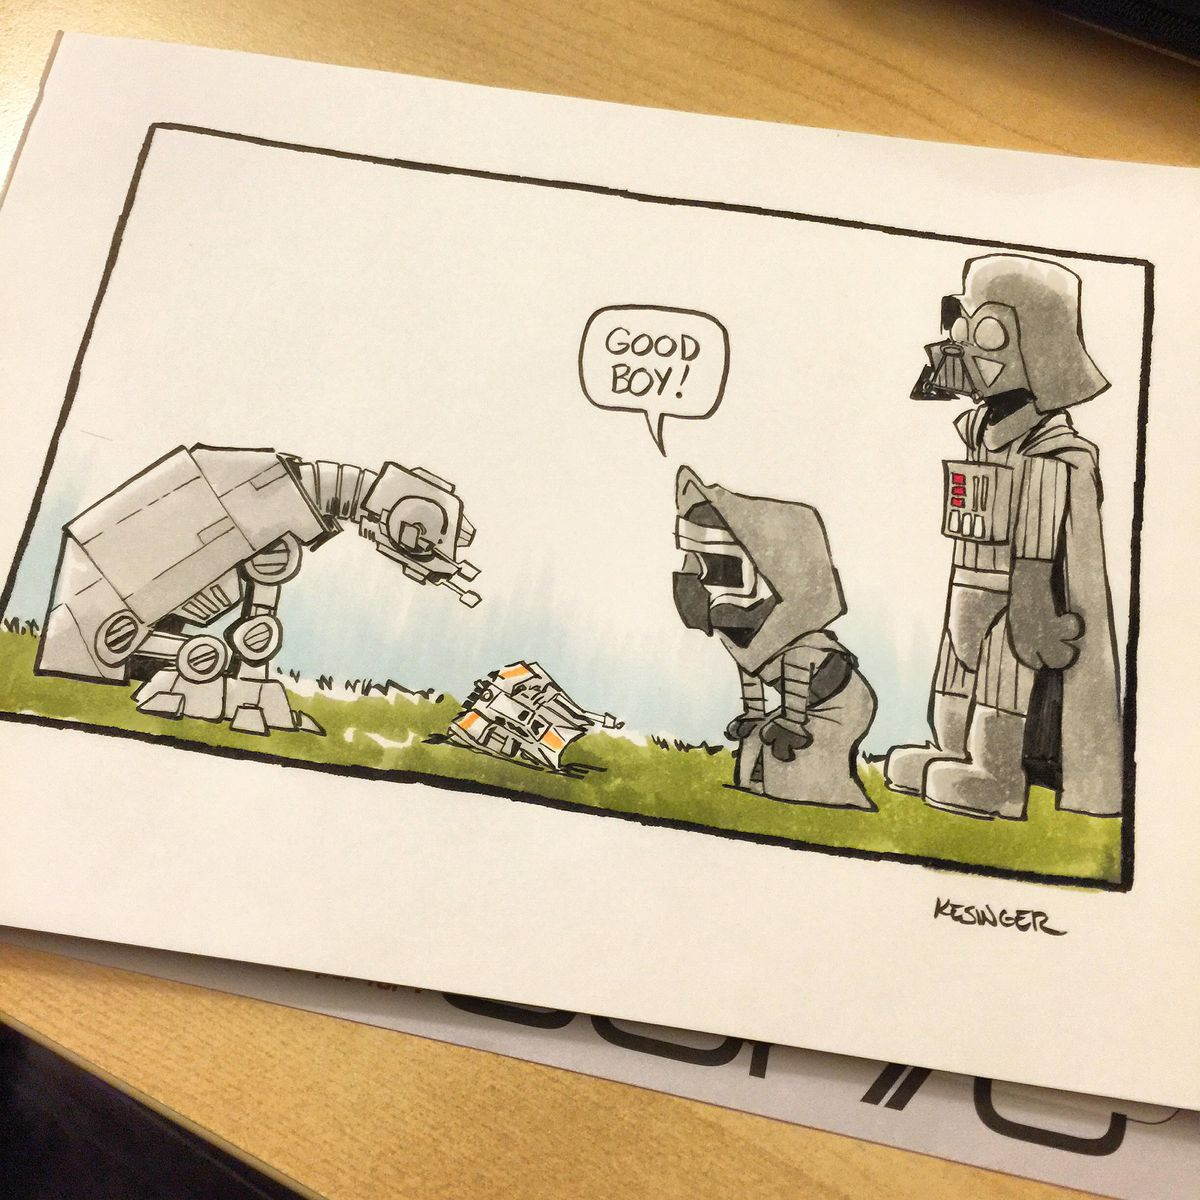 Star Wars and Calvin & Hobbes is the perfect combination ... Cartoon Kid Singer